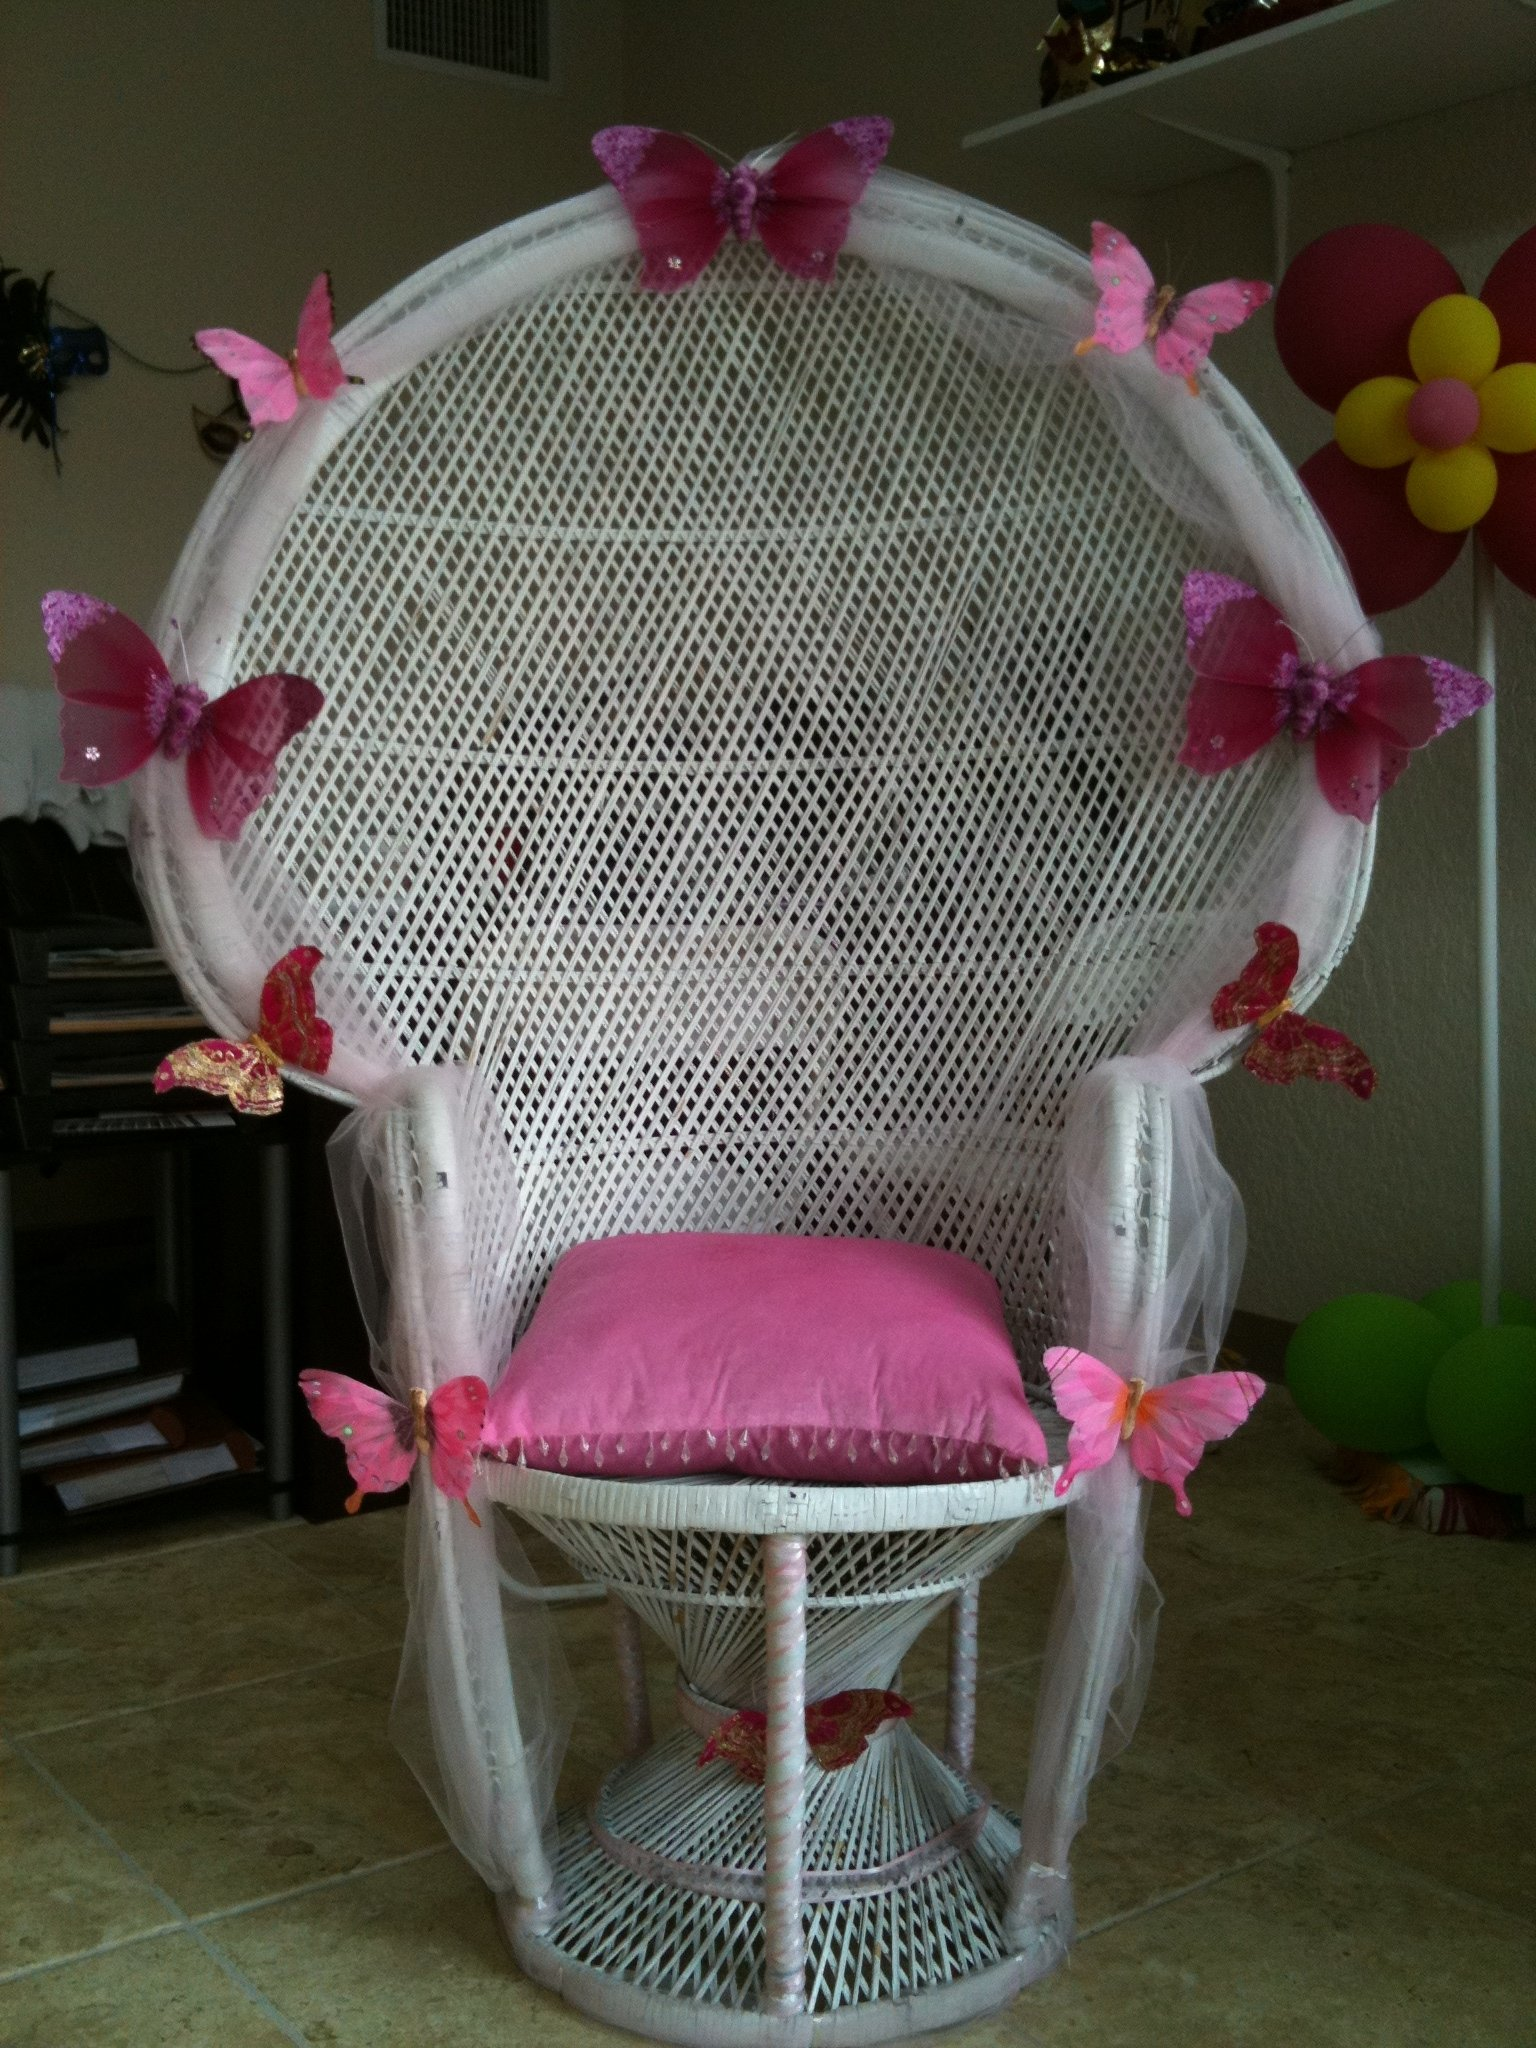 10 Fantastic Baby Shower Chair Decoration Ideas nice decoration ideas baby shower mothers chair free baby shower 2021